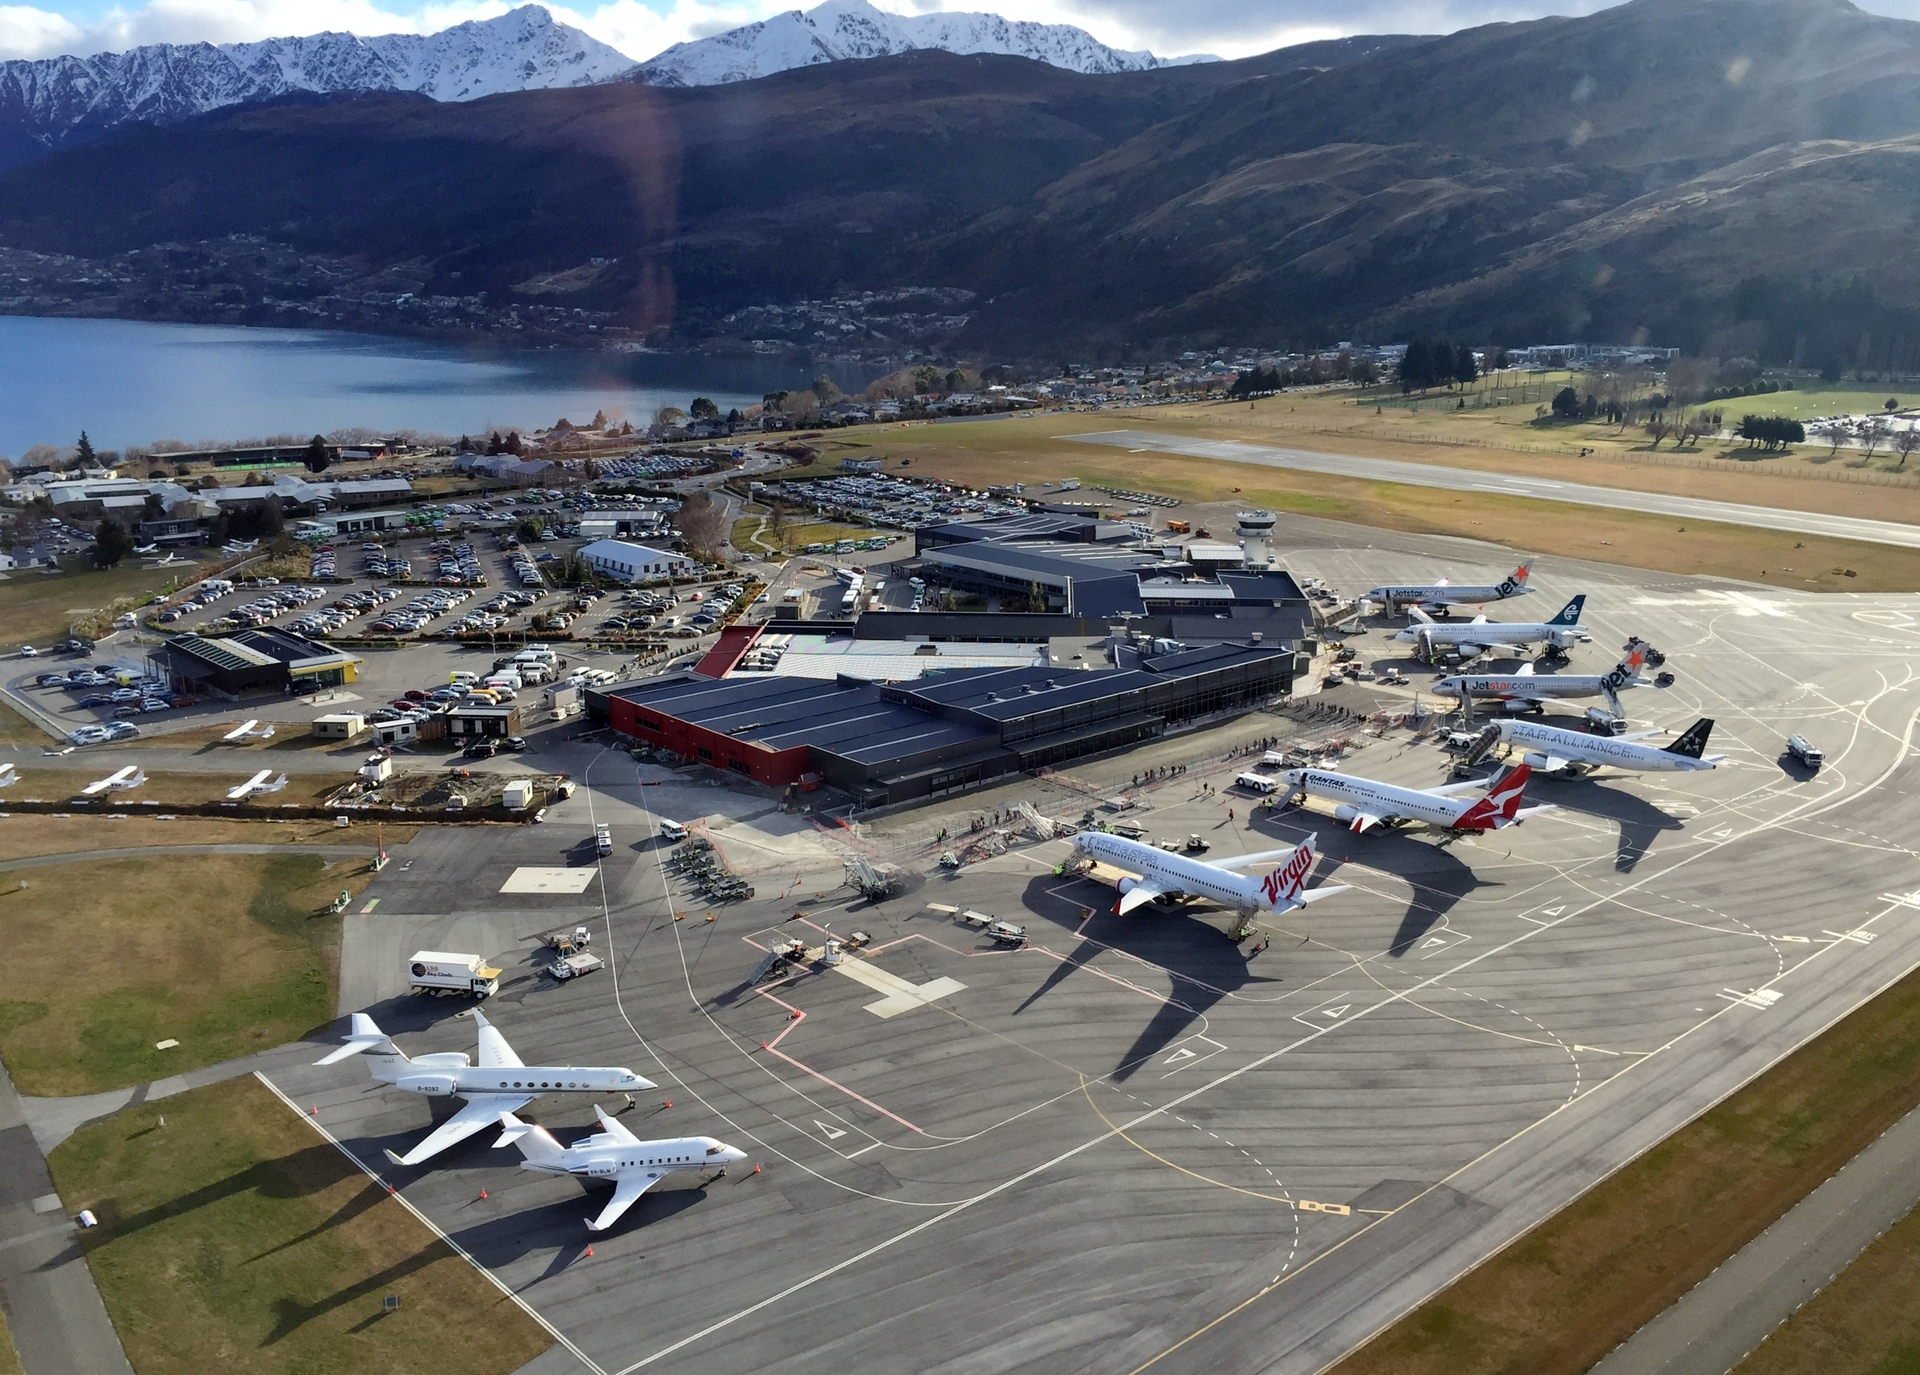 Fence-jumper at Queenstown airport detained